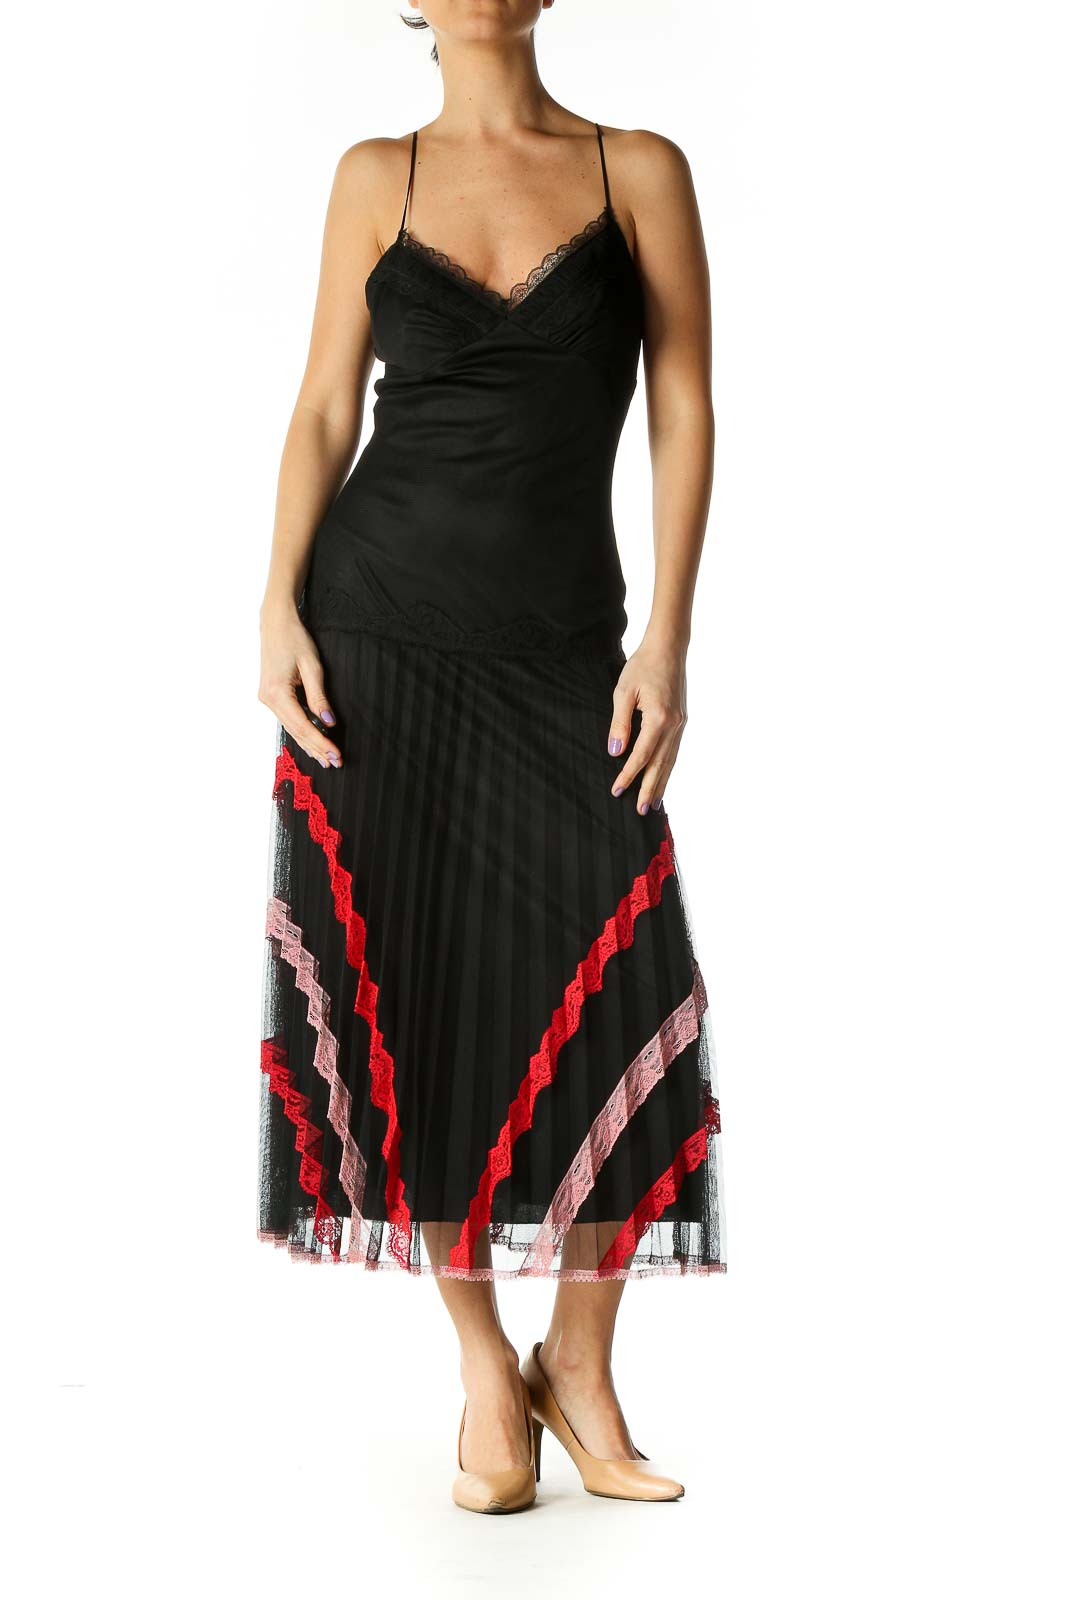 Black Solid Chic A-Line Dress Front